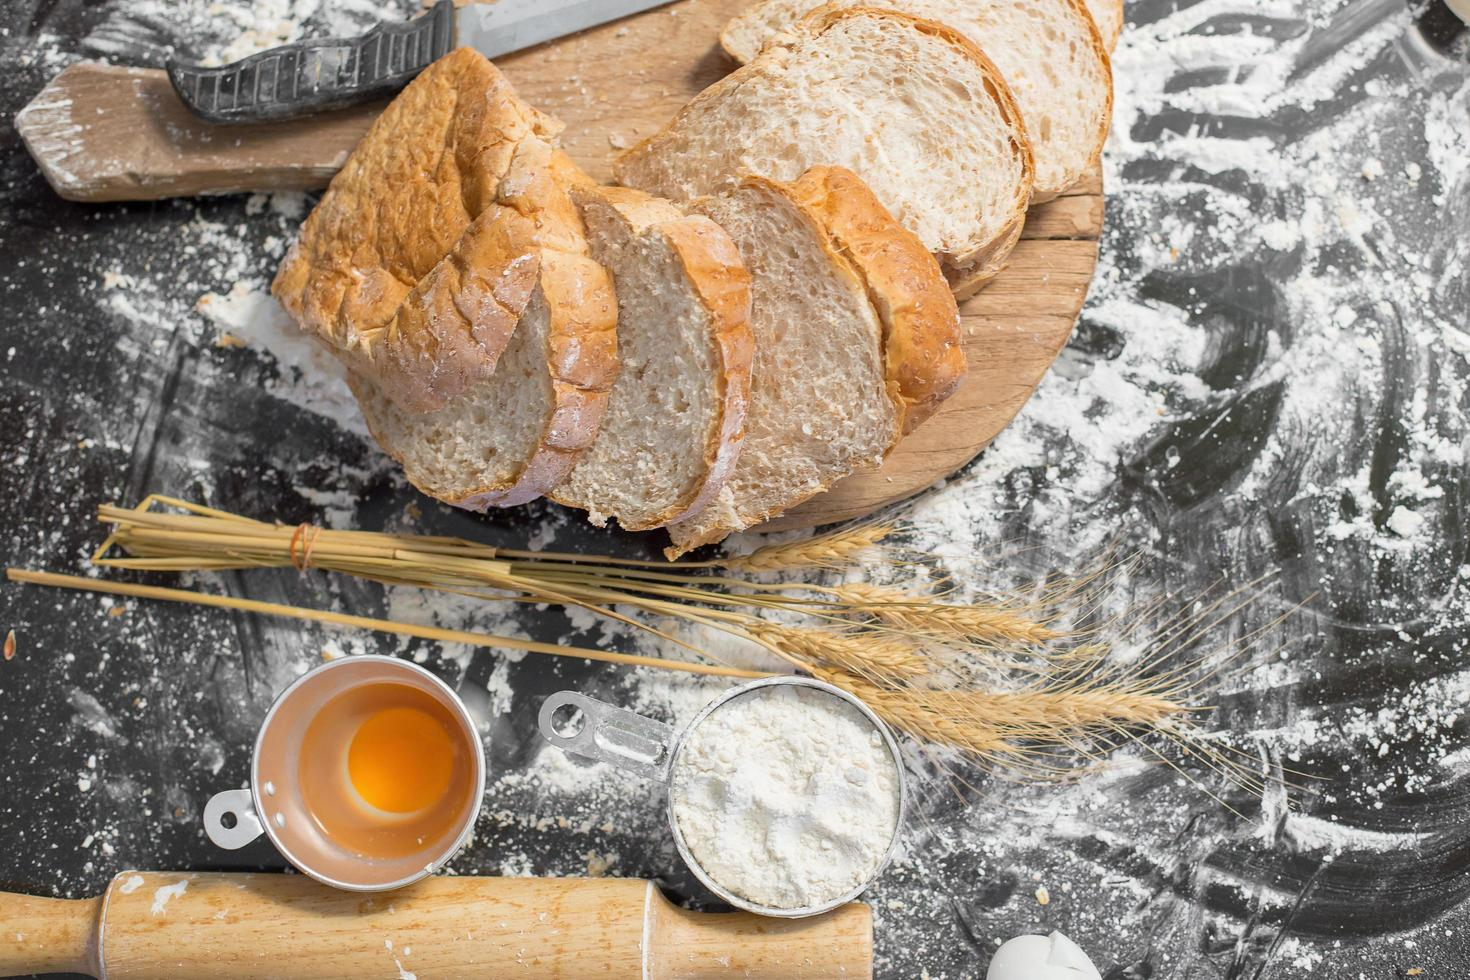 Rustic style bread on a wooden table photo